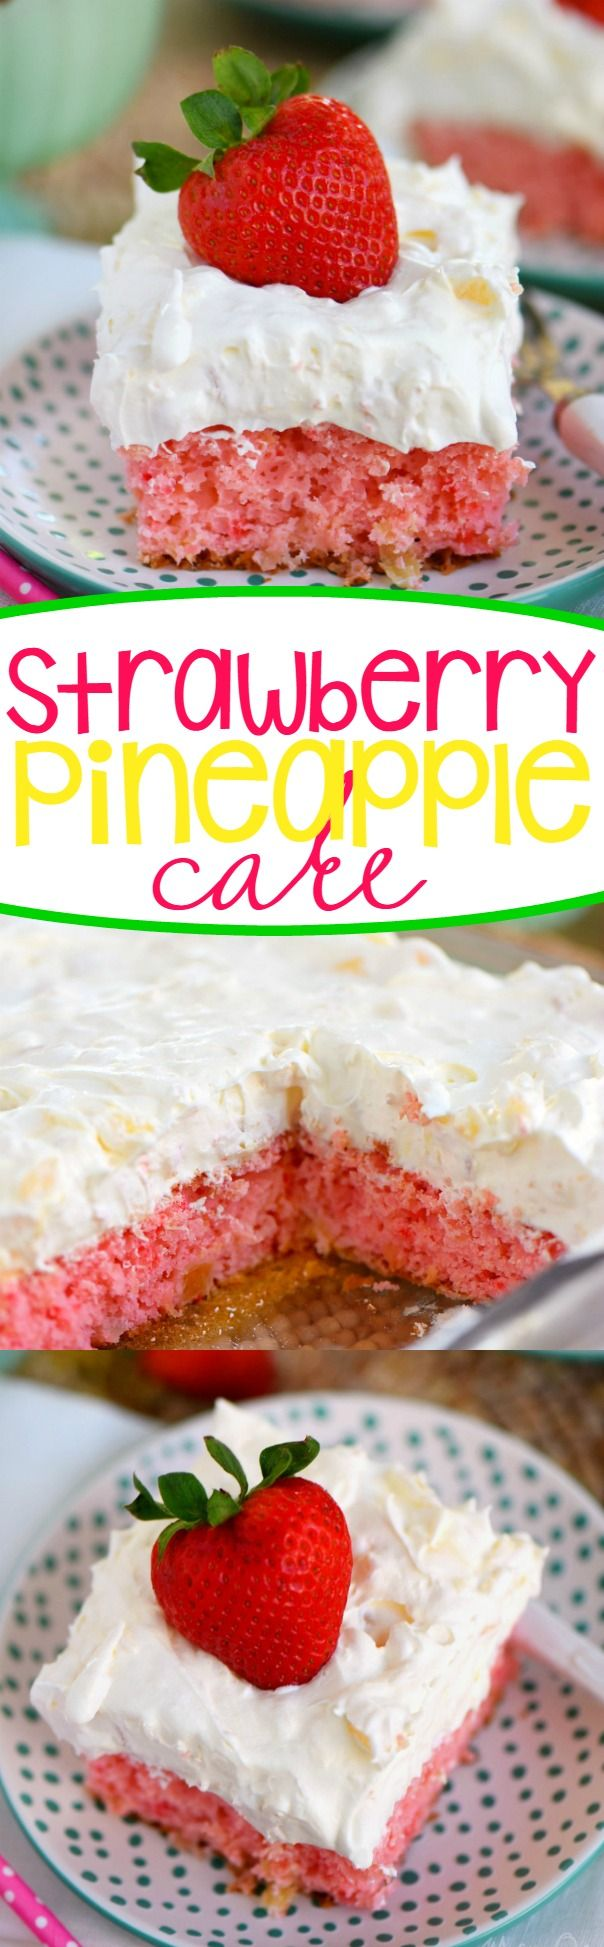 This Easy Strawberry Pineapple Cake recipe is ideal for all Spring and Summer festivities! Delightfully easy to make and topped with the creamiest pineapple fluff frosting, this cake will quickly become your go-to dessert recipe!: